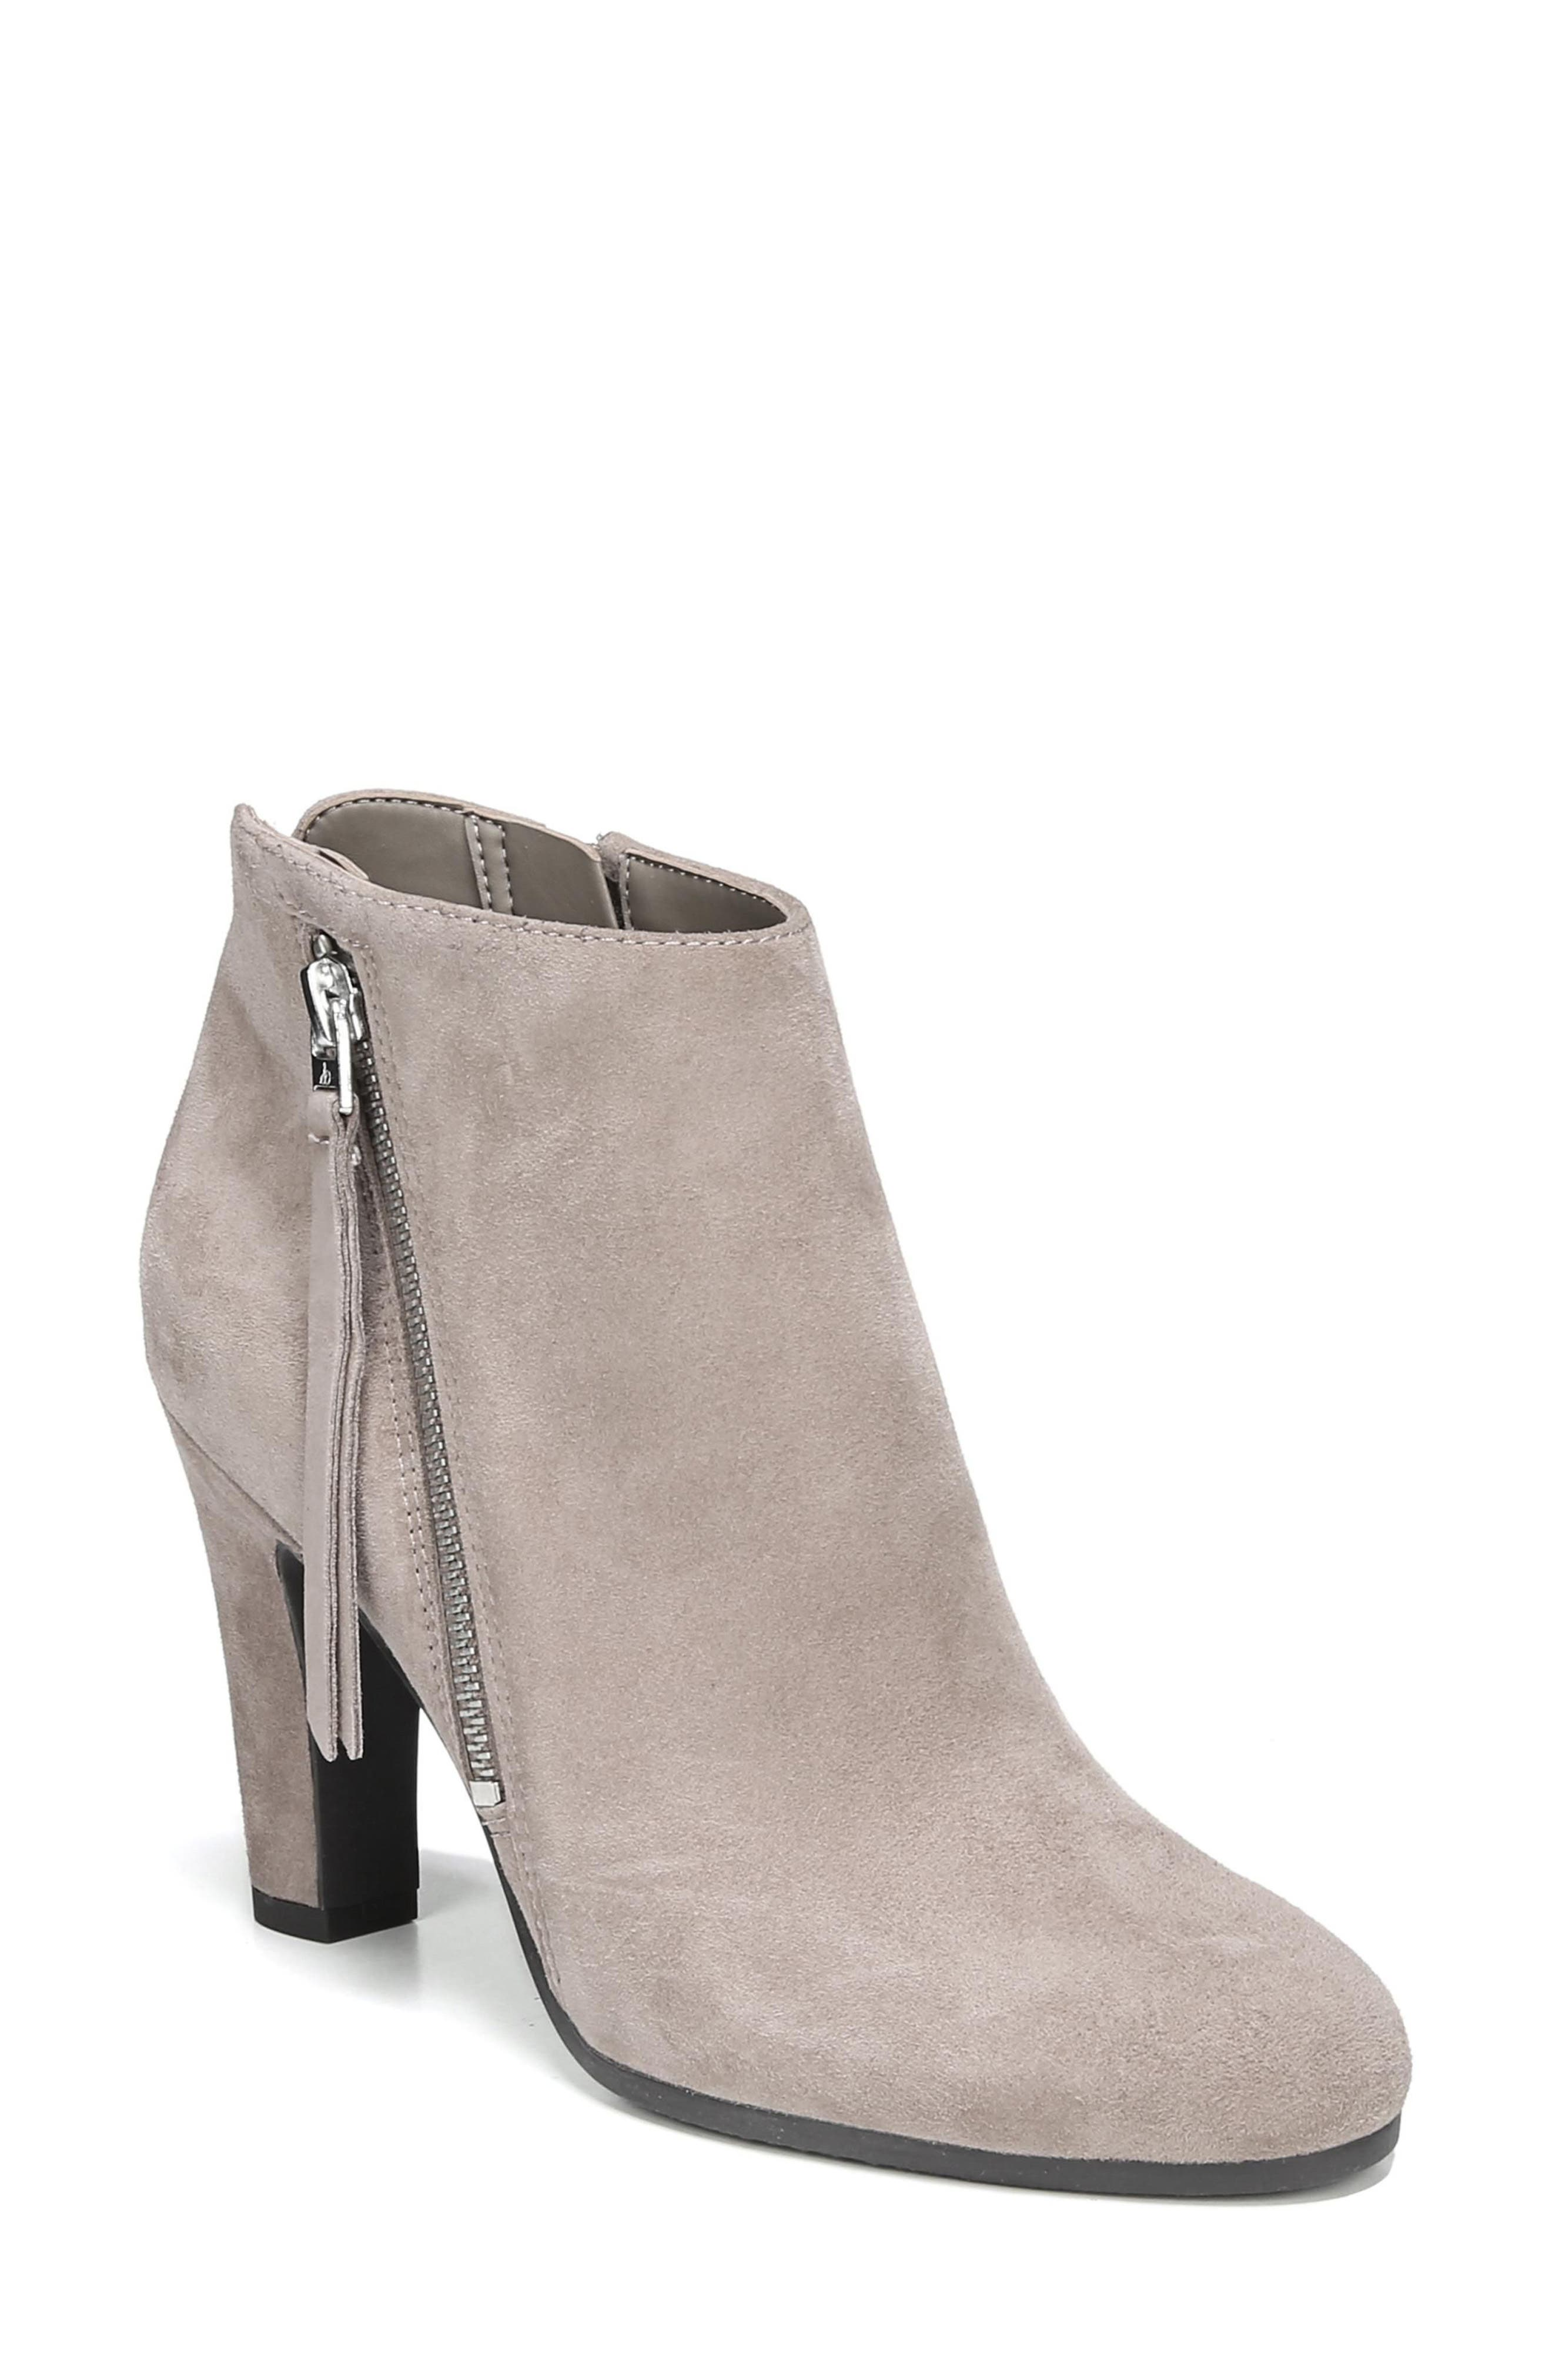 Sadee Angle Zip Bootie, New Putty Suede